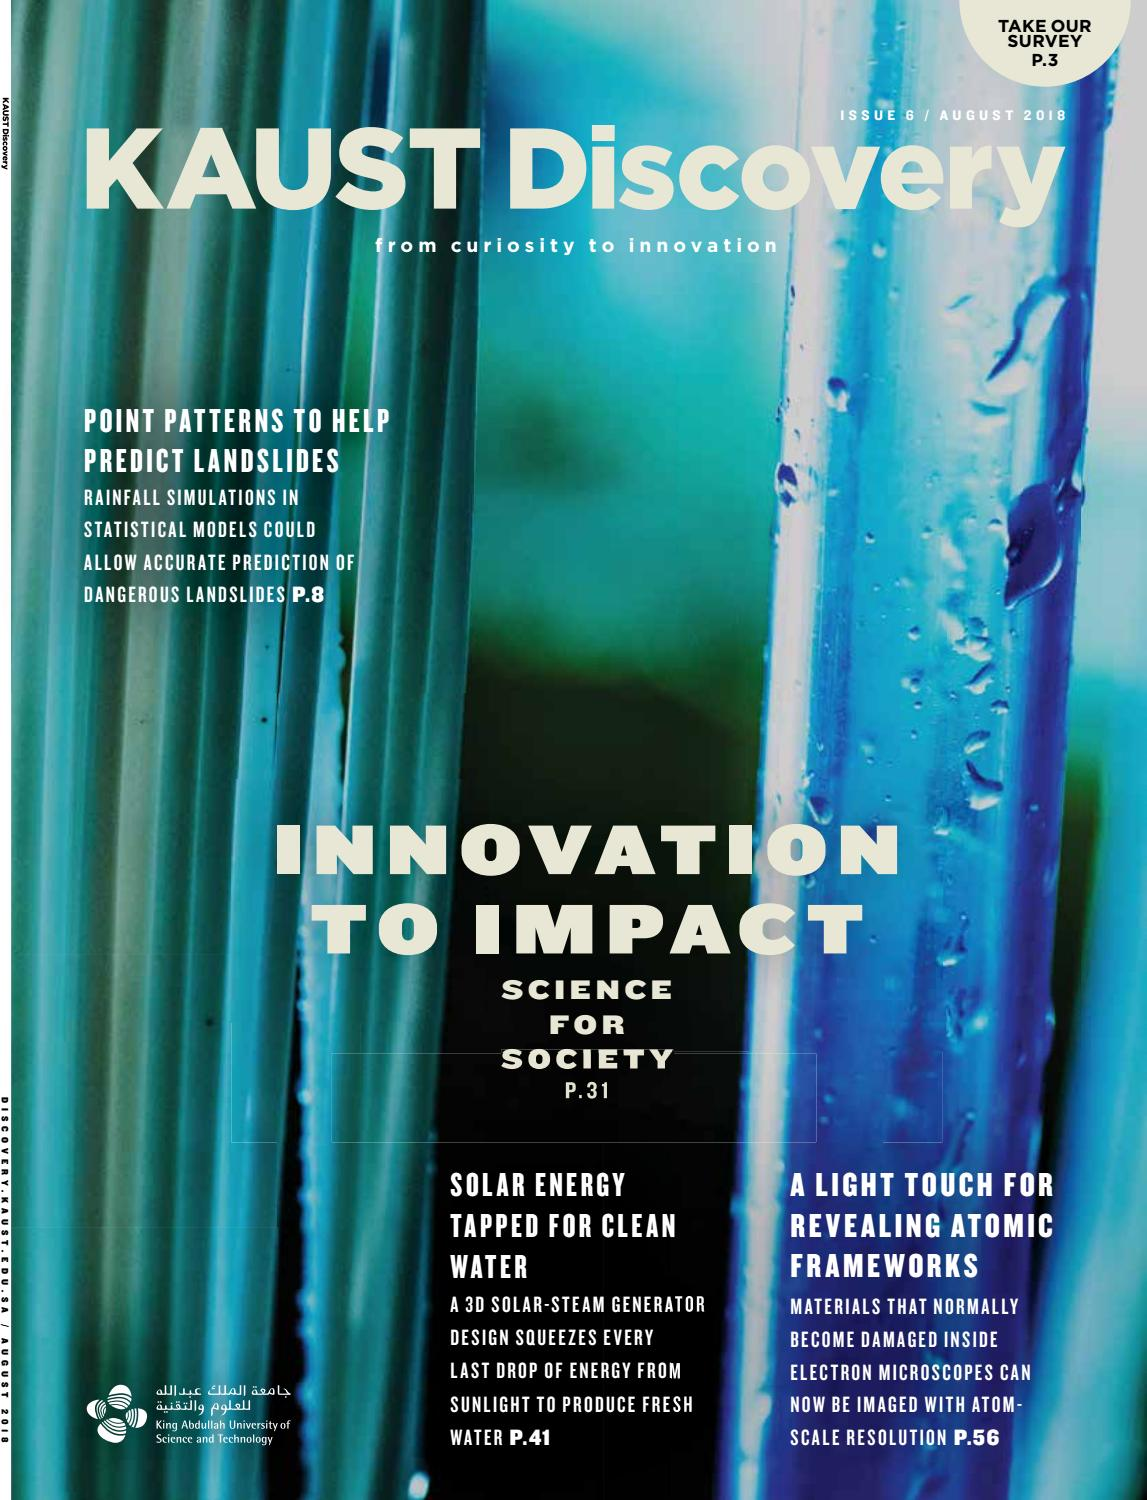 KAUST Discovery - Issue 6 by KAUST - issuu